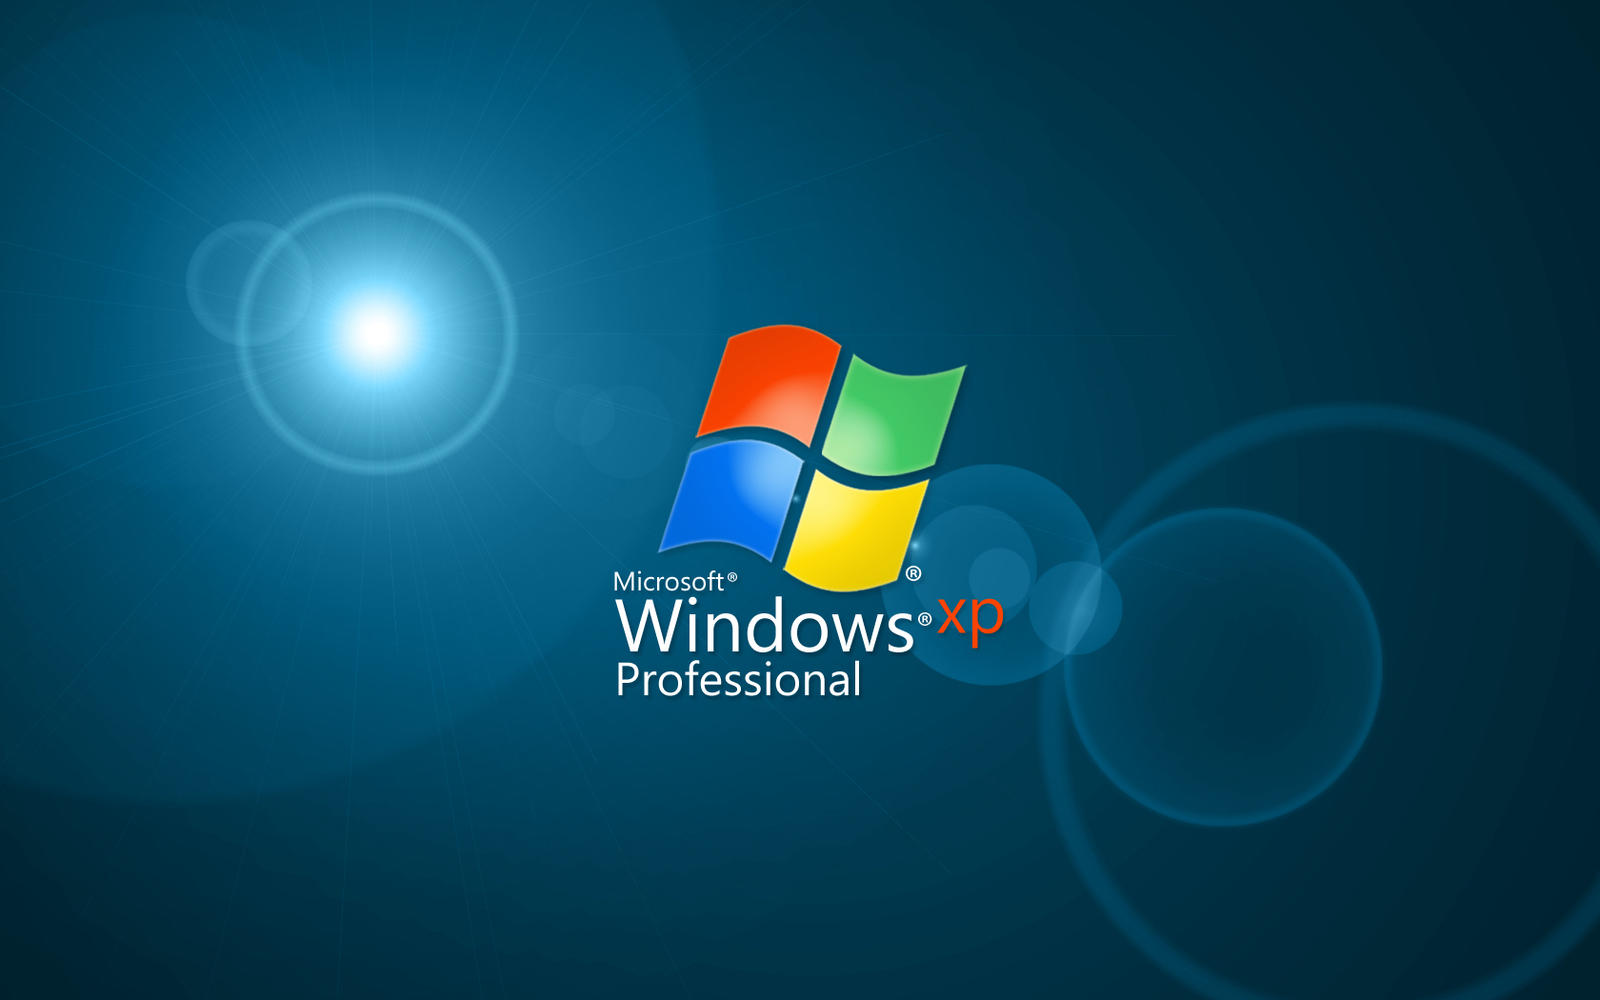 windows xp wallpaper blue by TravisLutz